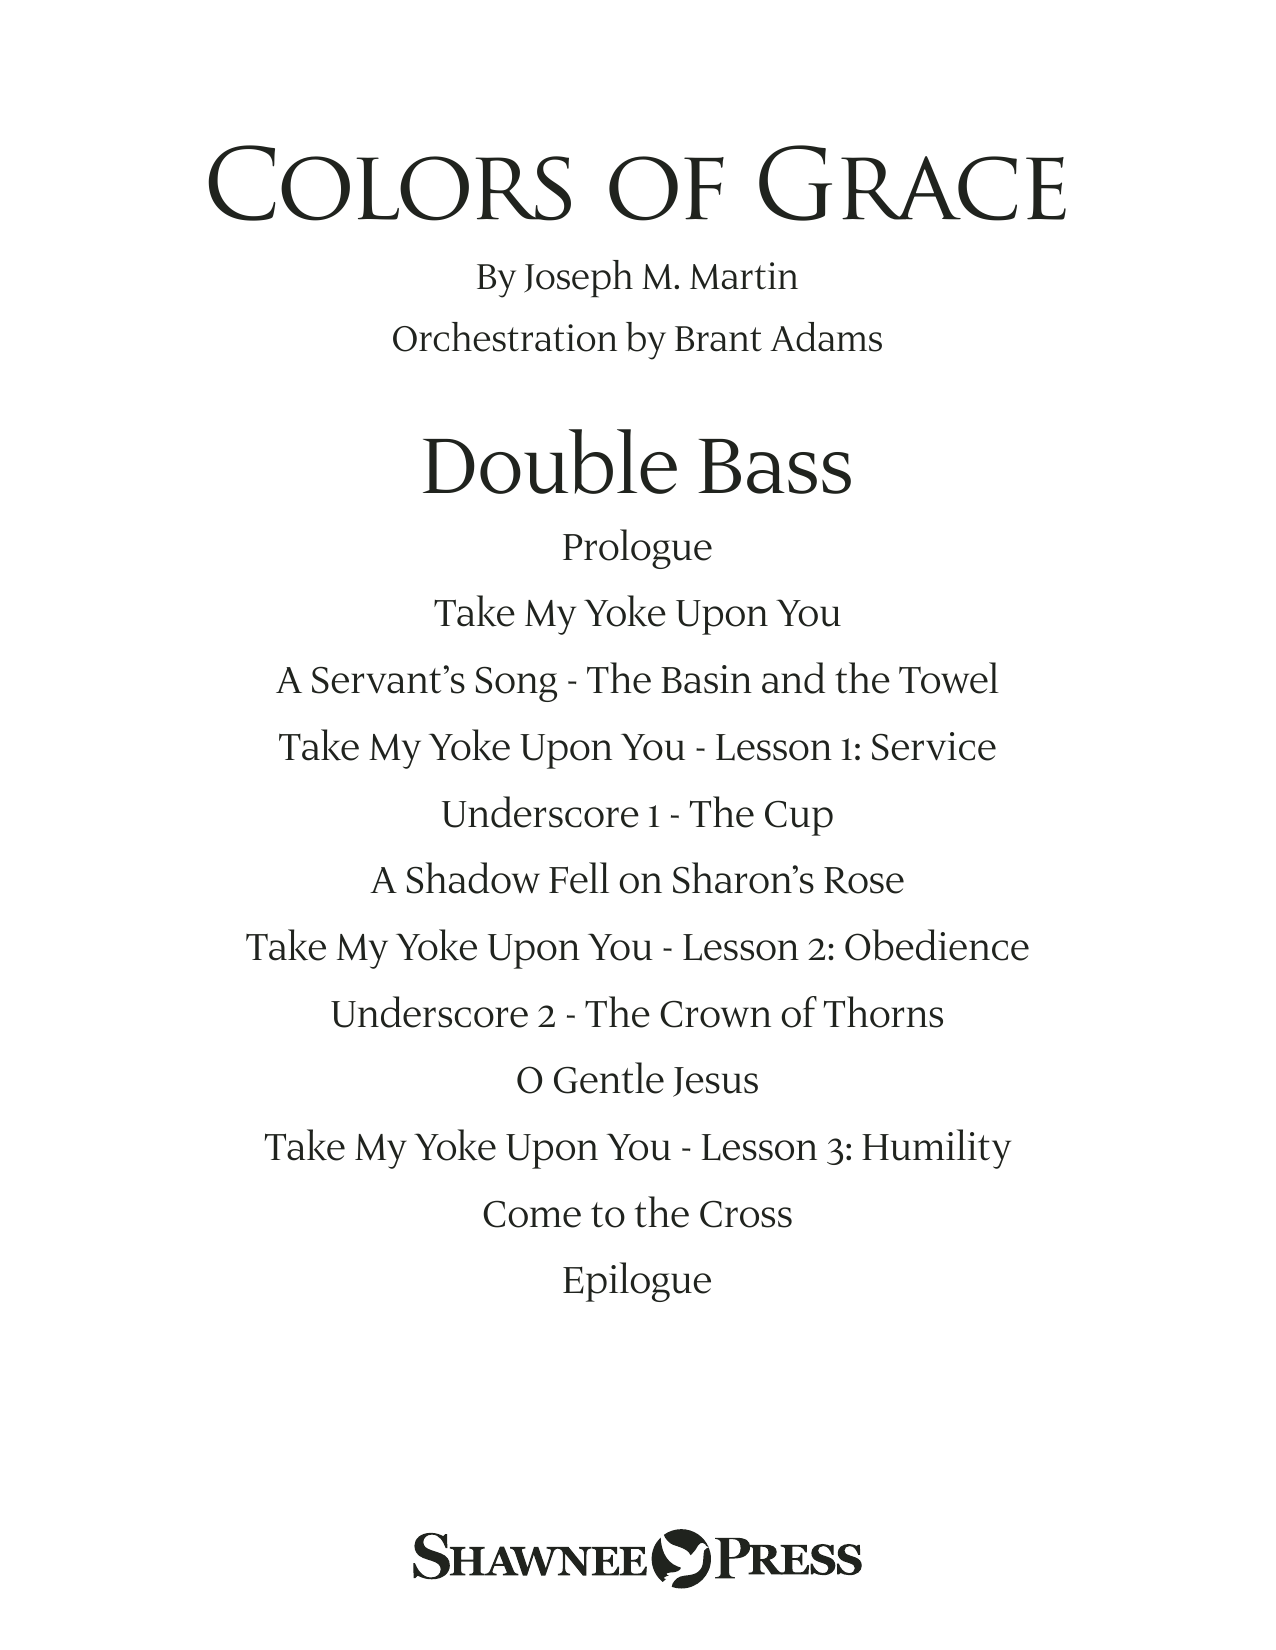 Colors of Grace - Lessons for Lent (New Edition) (Orchestra Accompaniment) - Double Bass (Choir Instrumental Pak)